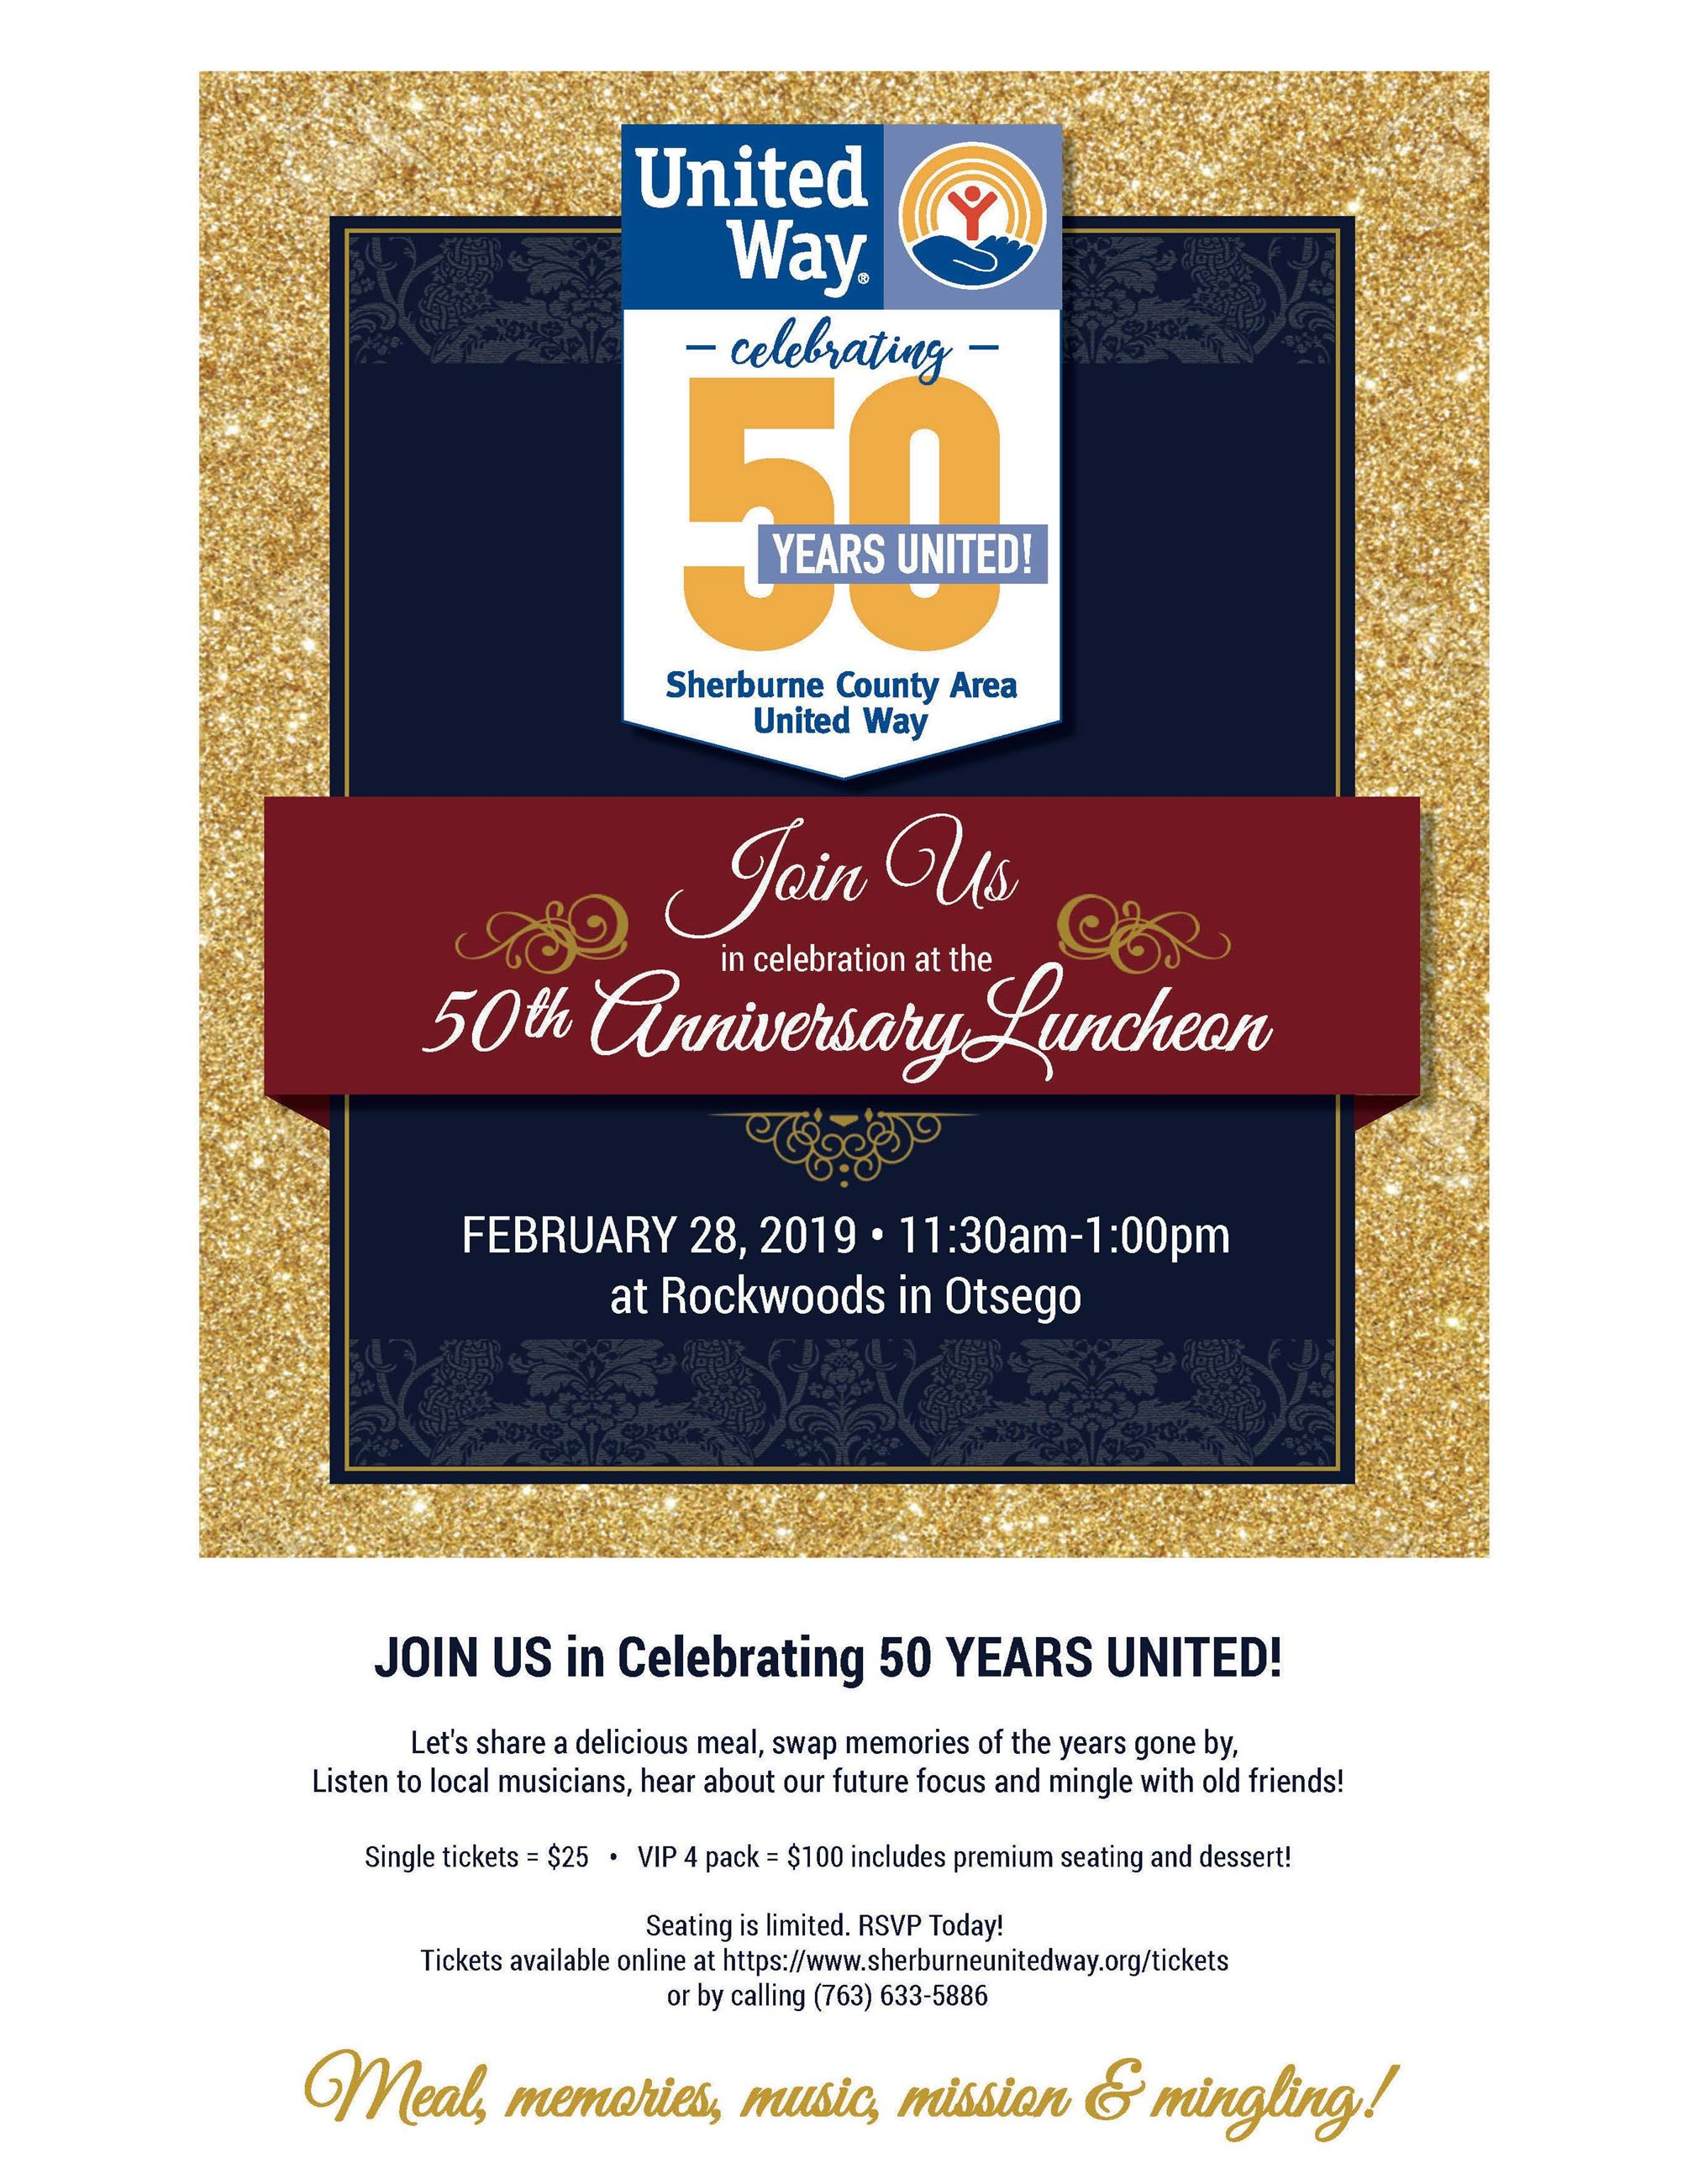 Sherburne County United Way 50th